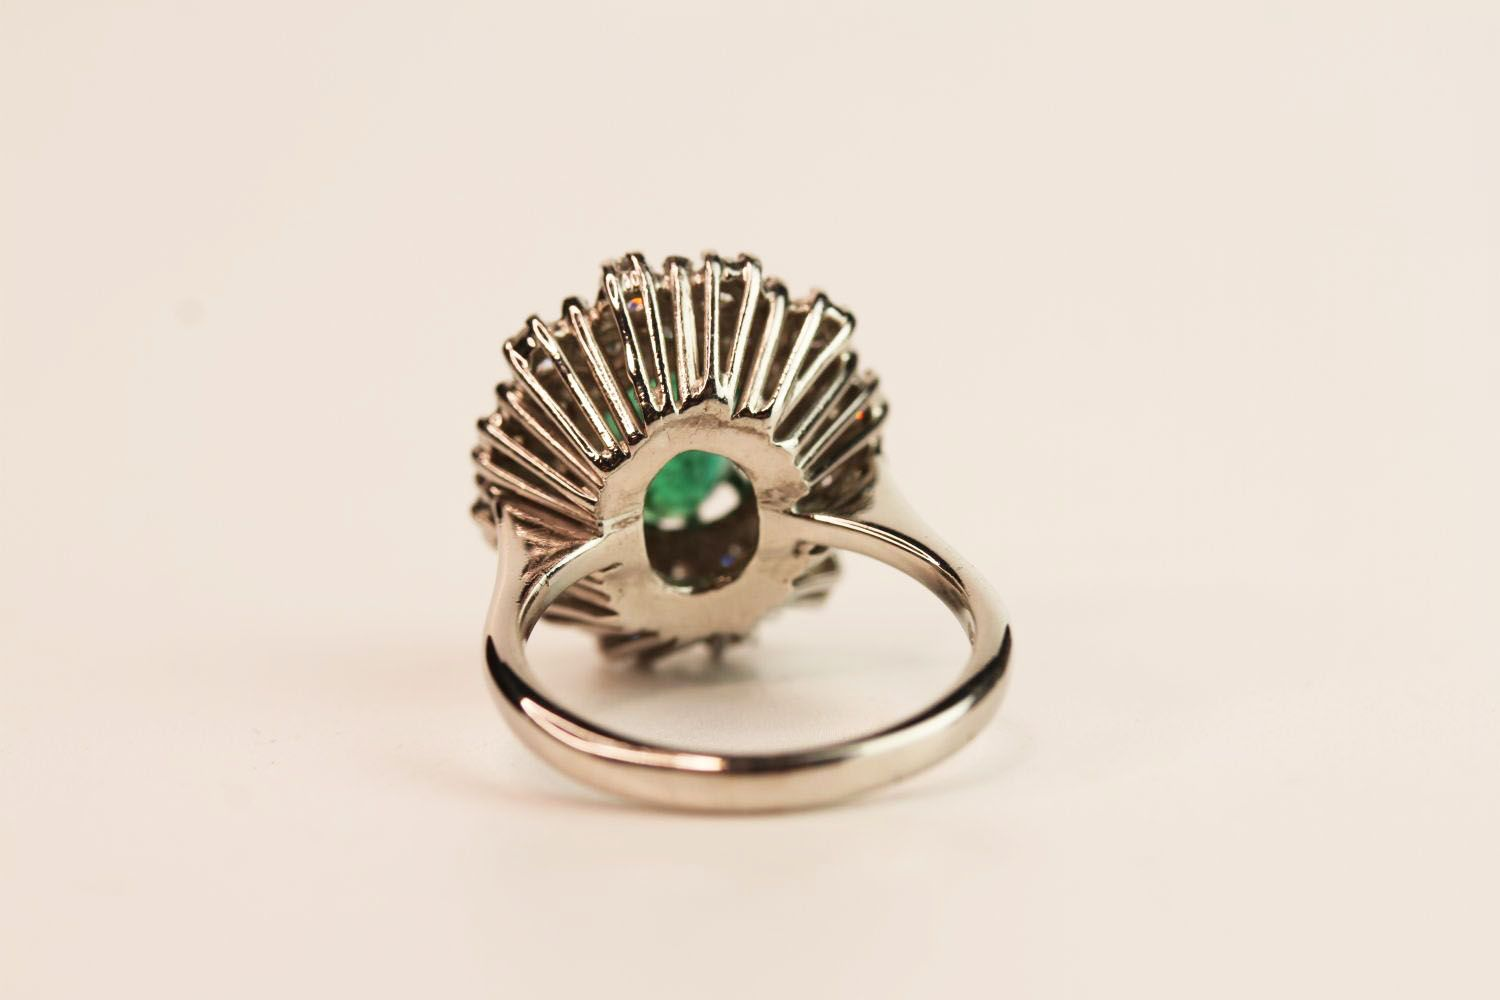 Emerald & Diamond Dress Ring, estimated 1.00ct oval cut emerald, claw set, 18ct white gold, - Image 3 of 3